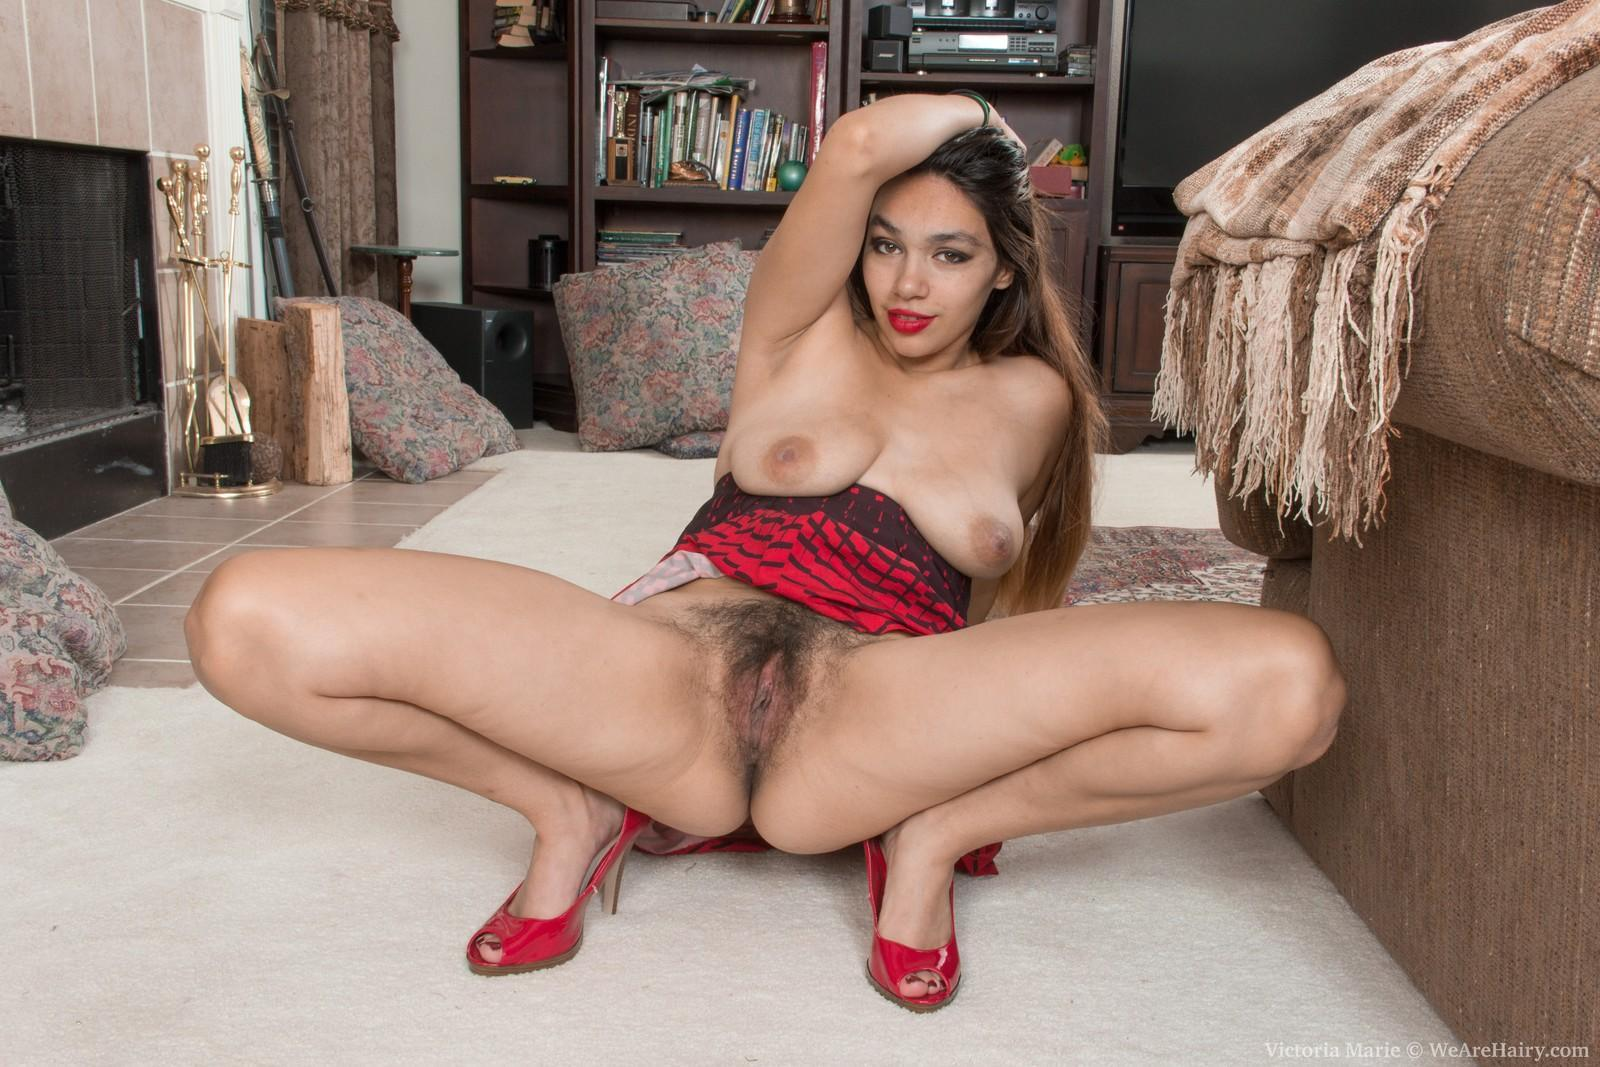 Black first timer Victoria Marie baring enormous all-natural boobies before parting furry coochie